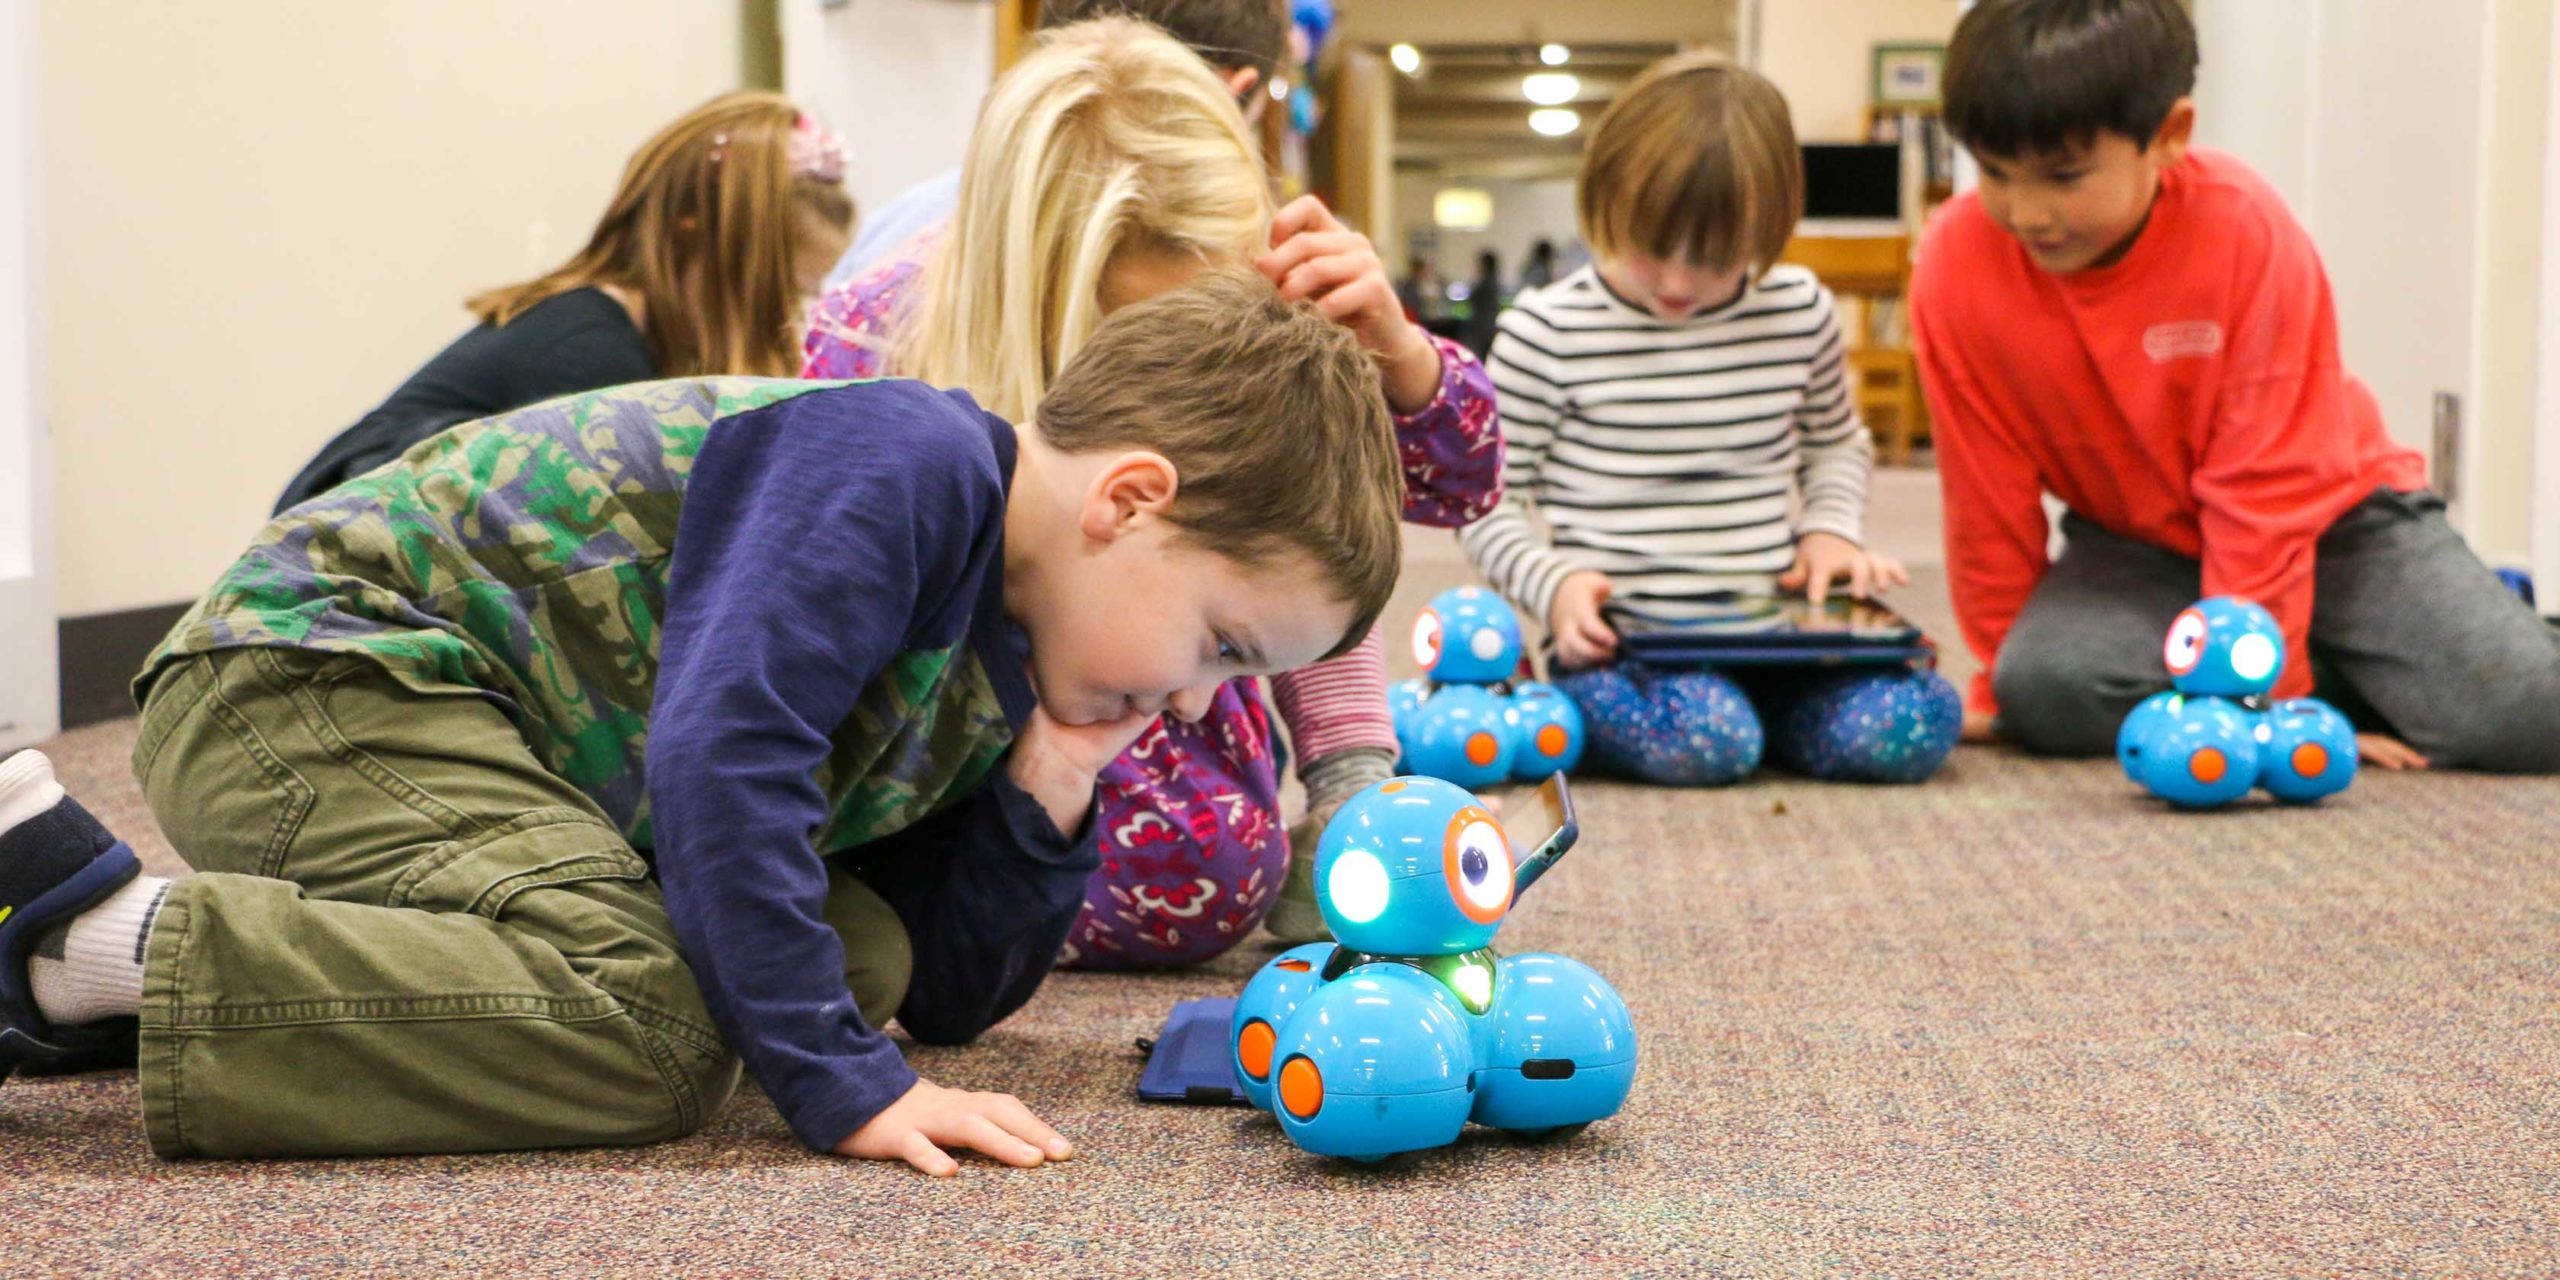 a student playing with a robotic toy